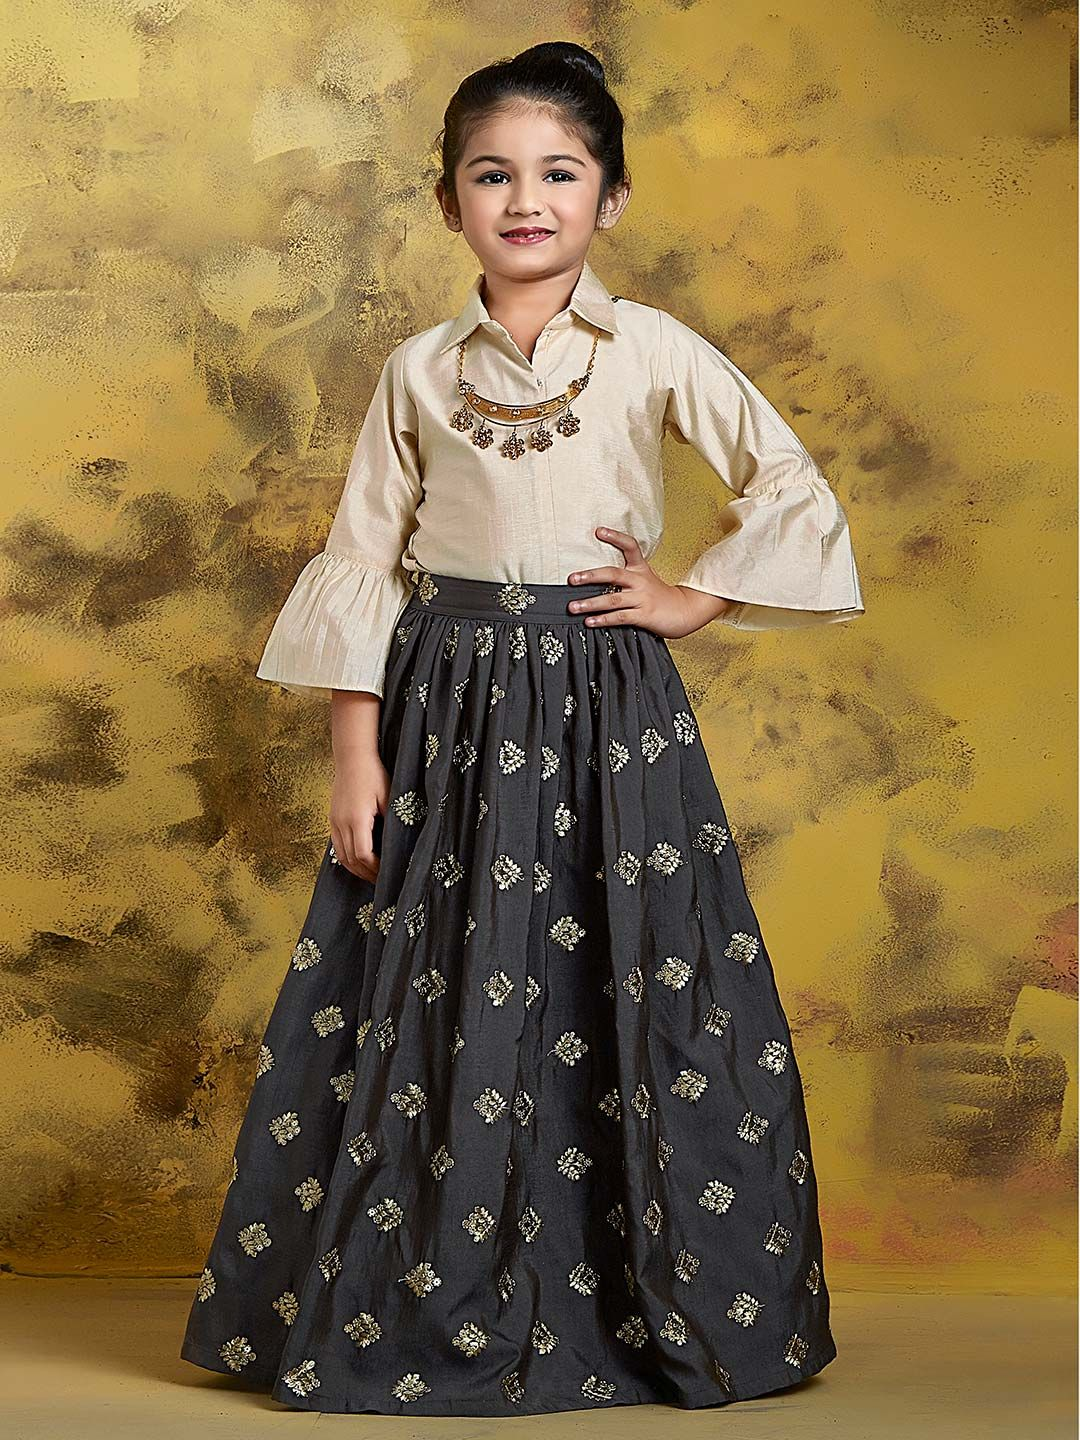 Pin on Kids Ethnic clothes